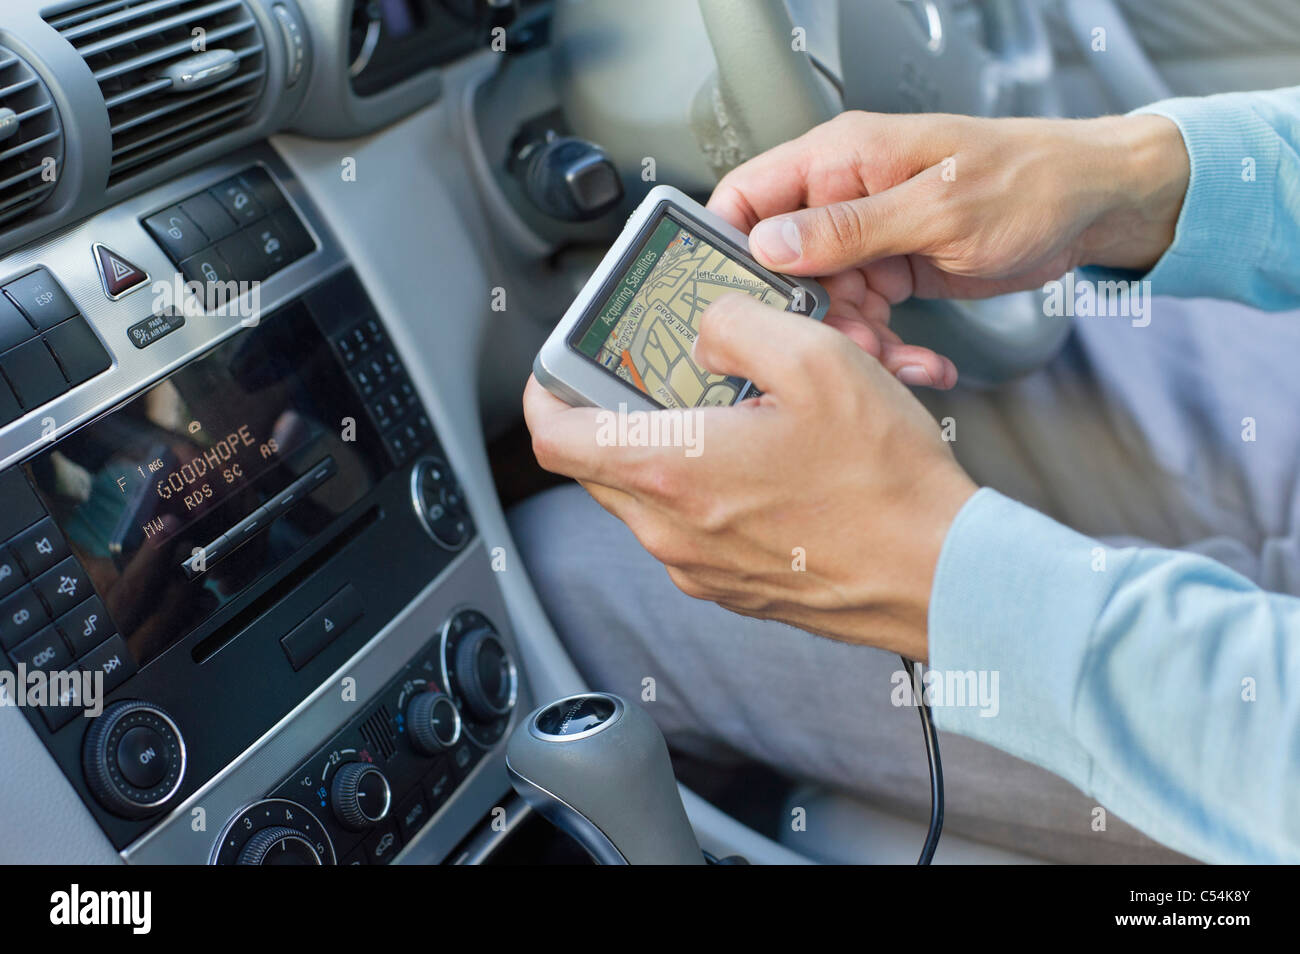 Close-up of human hand using GPS navigation system in car - Stock Image